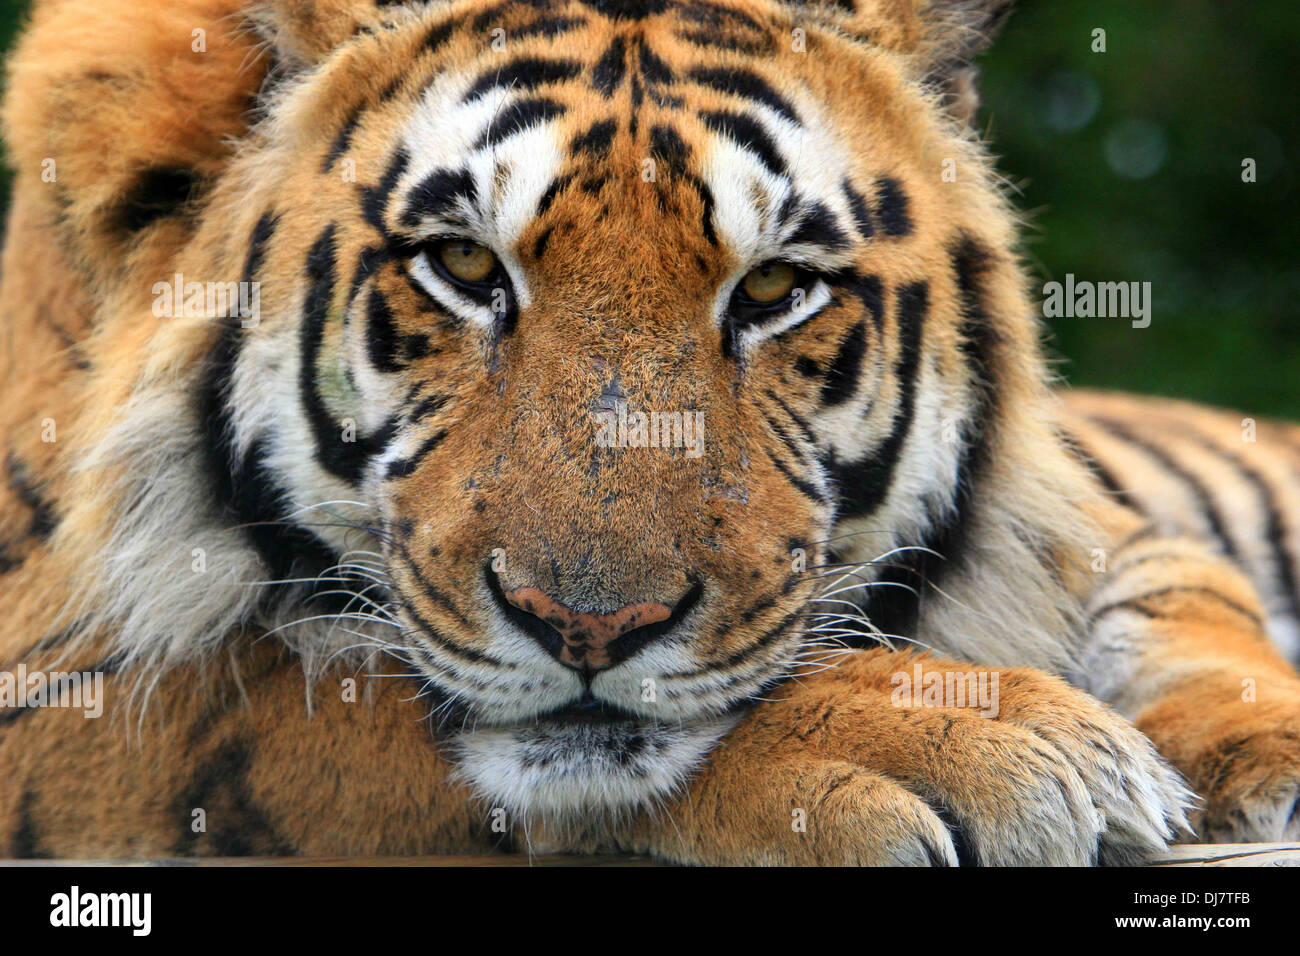 close up of tiger s face stock photo 62867823 alamy